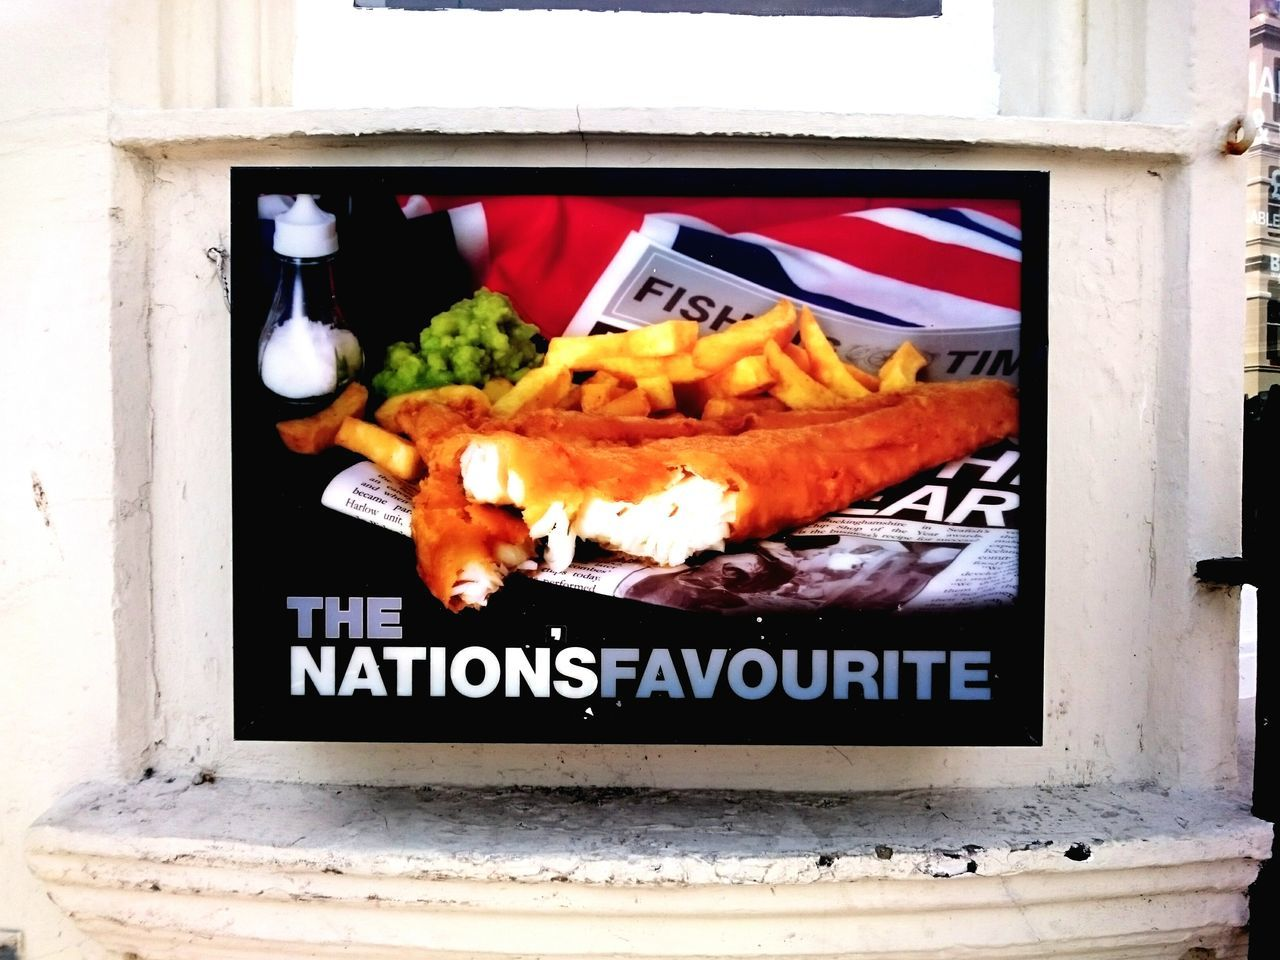 Fishnchips Fishandchips Englishtradition English England Food Poster Sign Brighton Union Jack Favourite Lightbox Urban Landscape Streetphotography